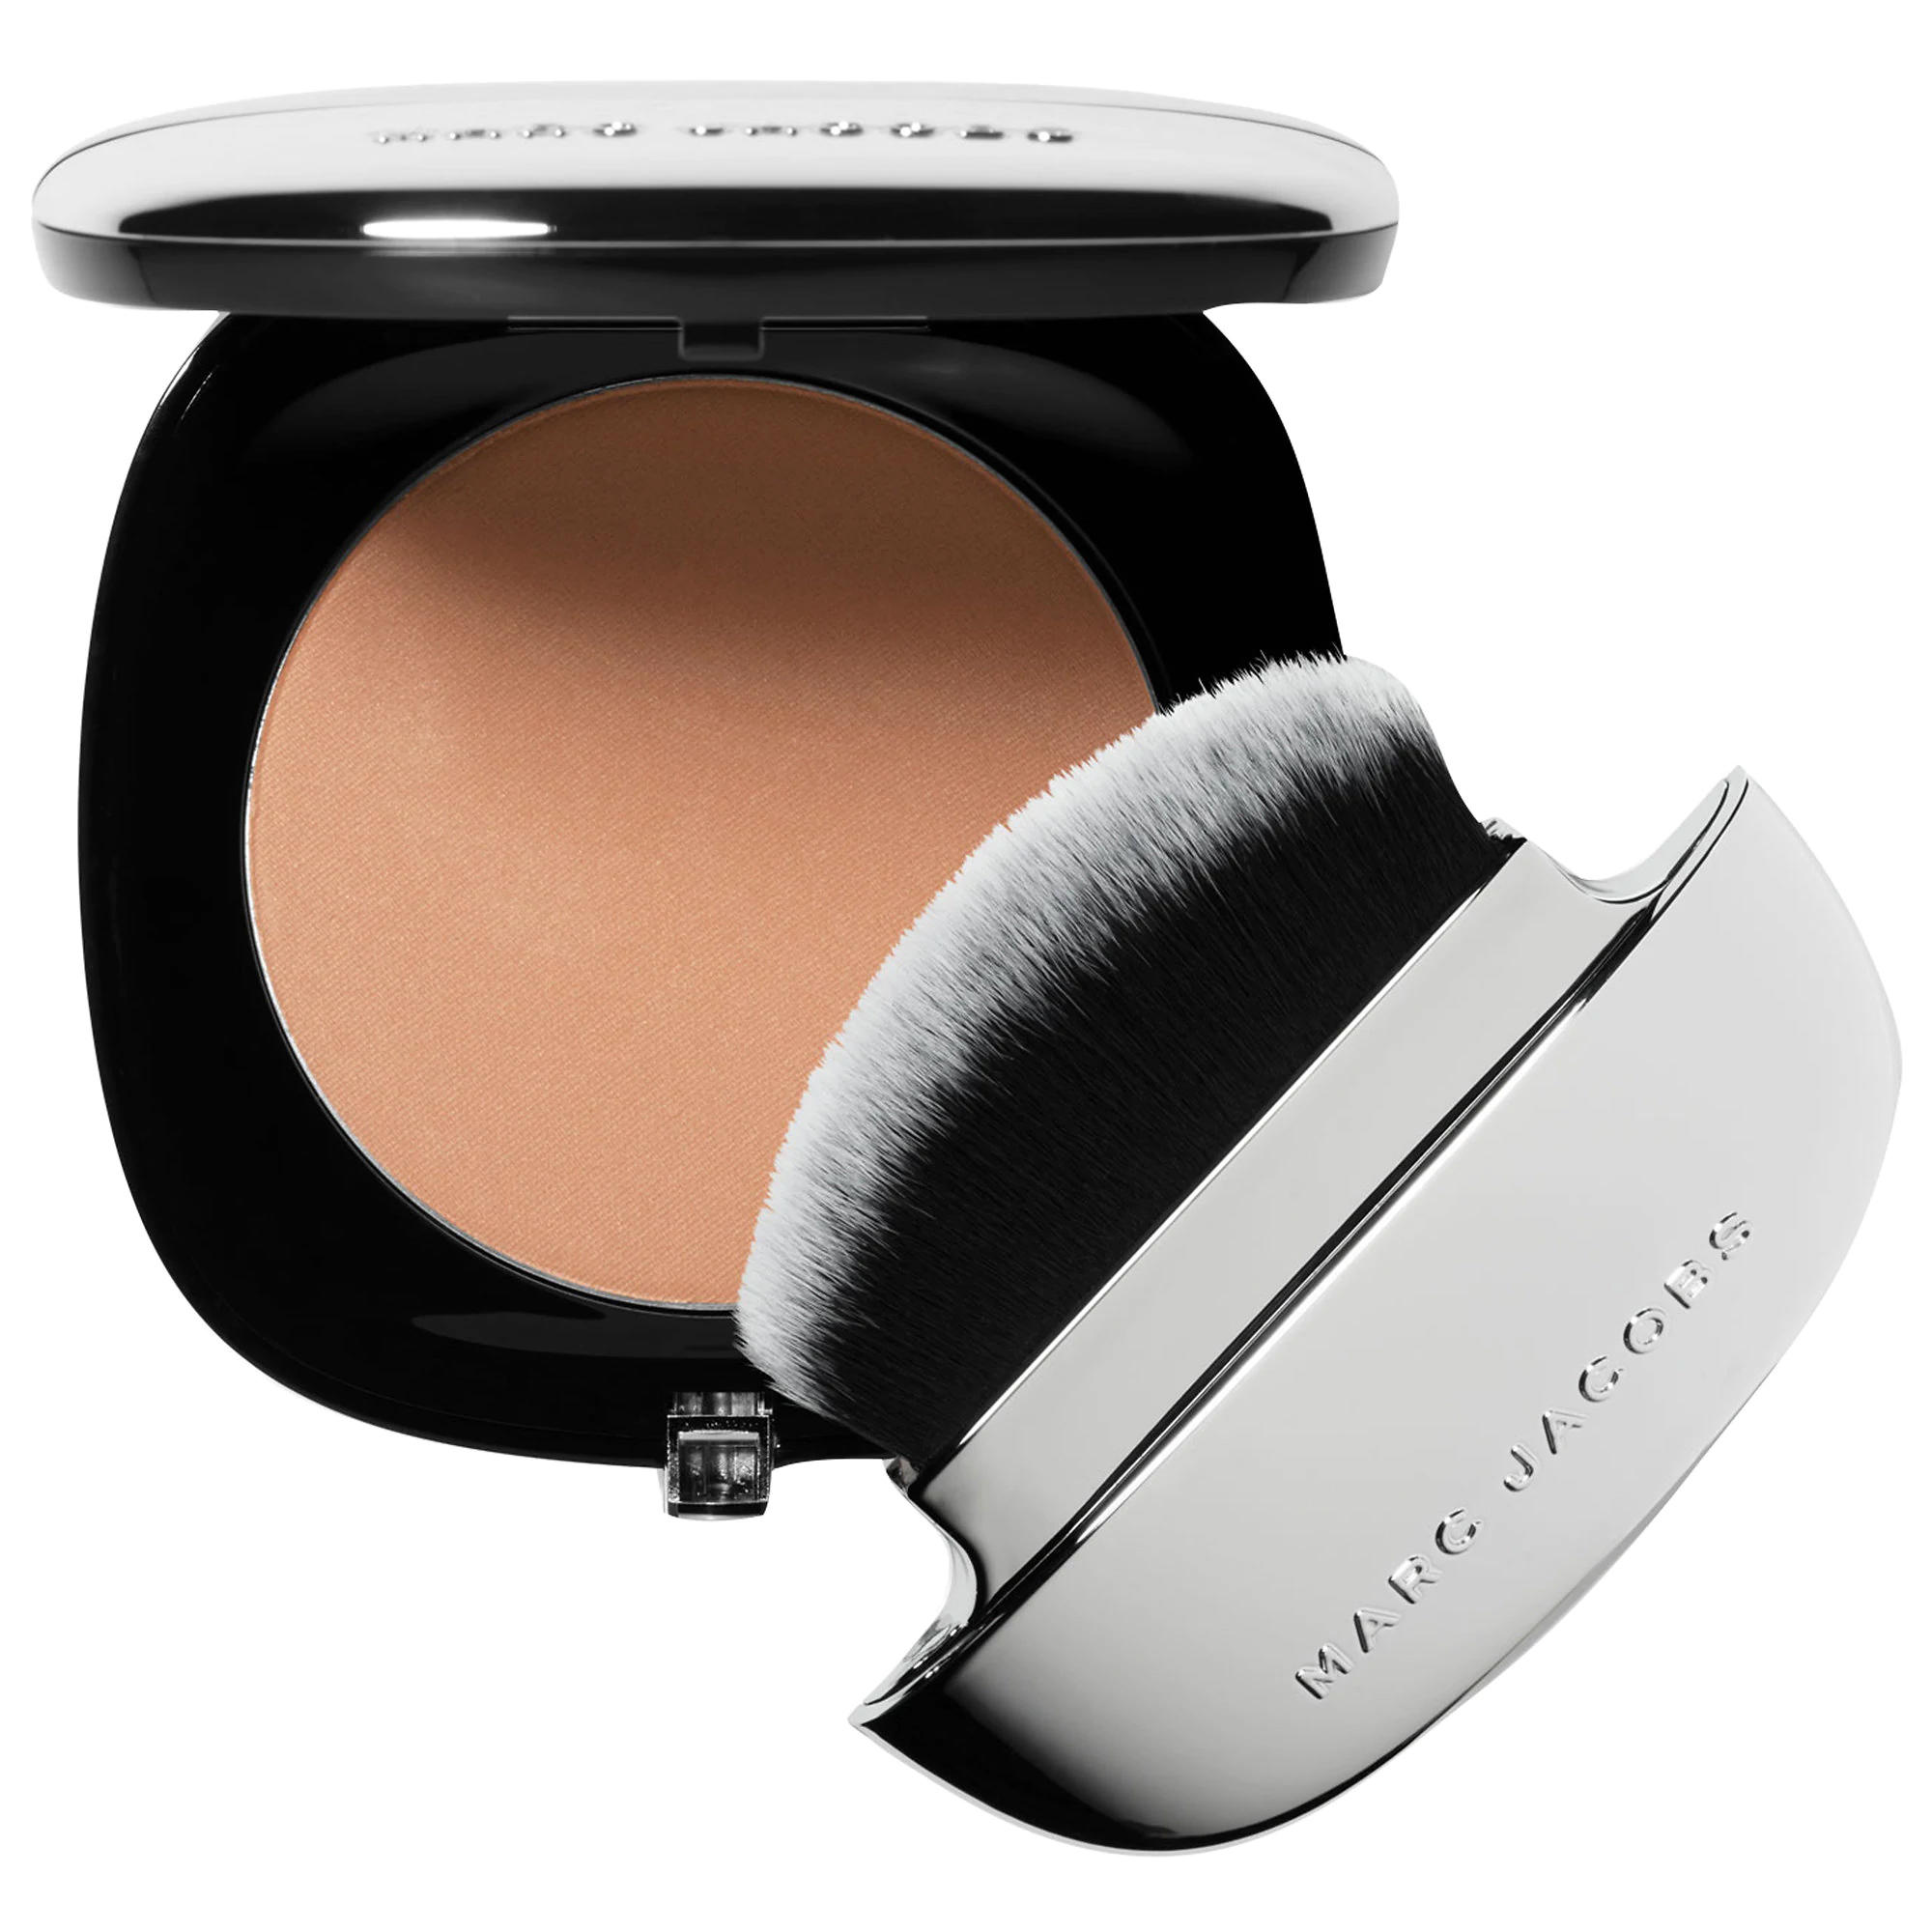 Marc Jacobs Accomplice Blurring Powder Muse 54